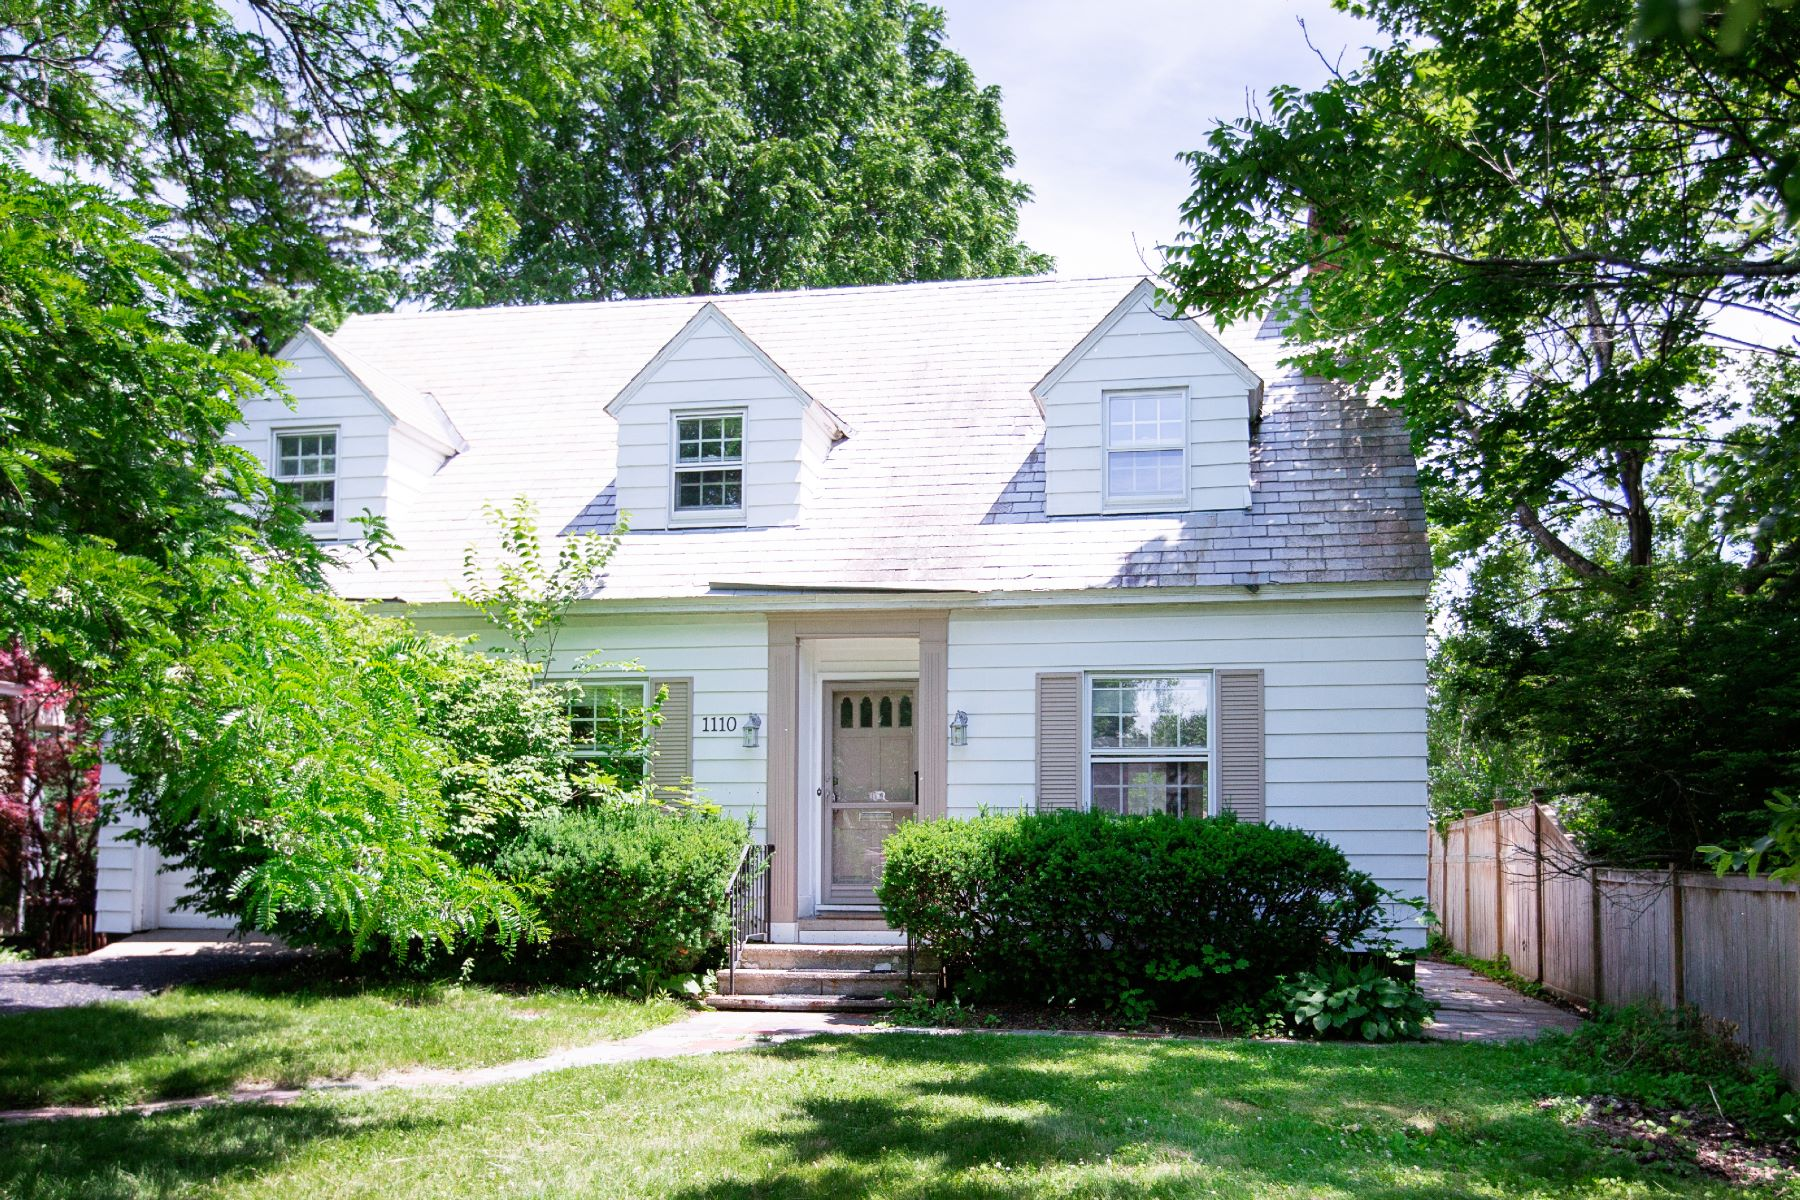 Single Family Homes for Active at Lovely Cape in the Country Club Neighborhood 1110 Millington Rd. Niskayuna, New York 12309 United States